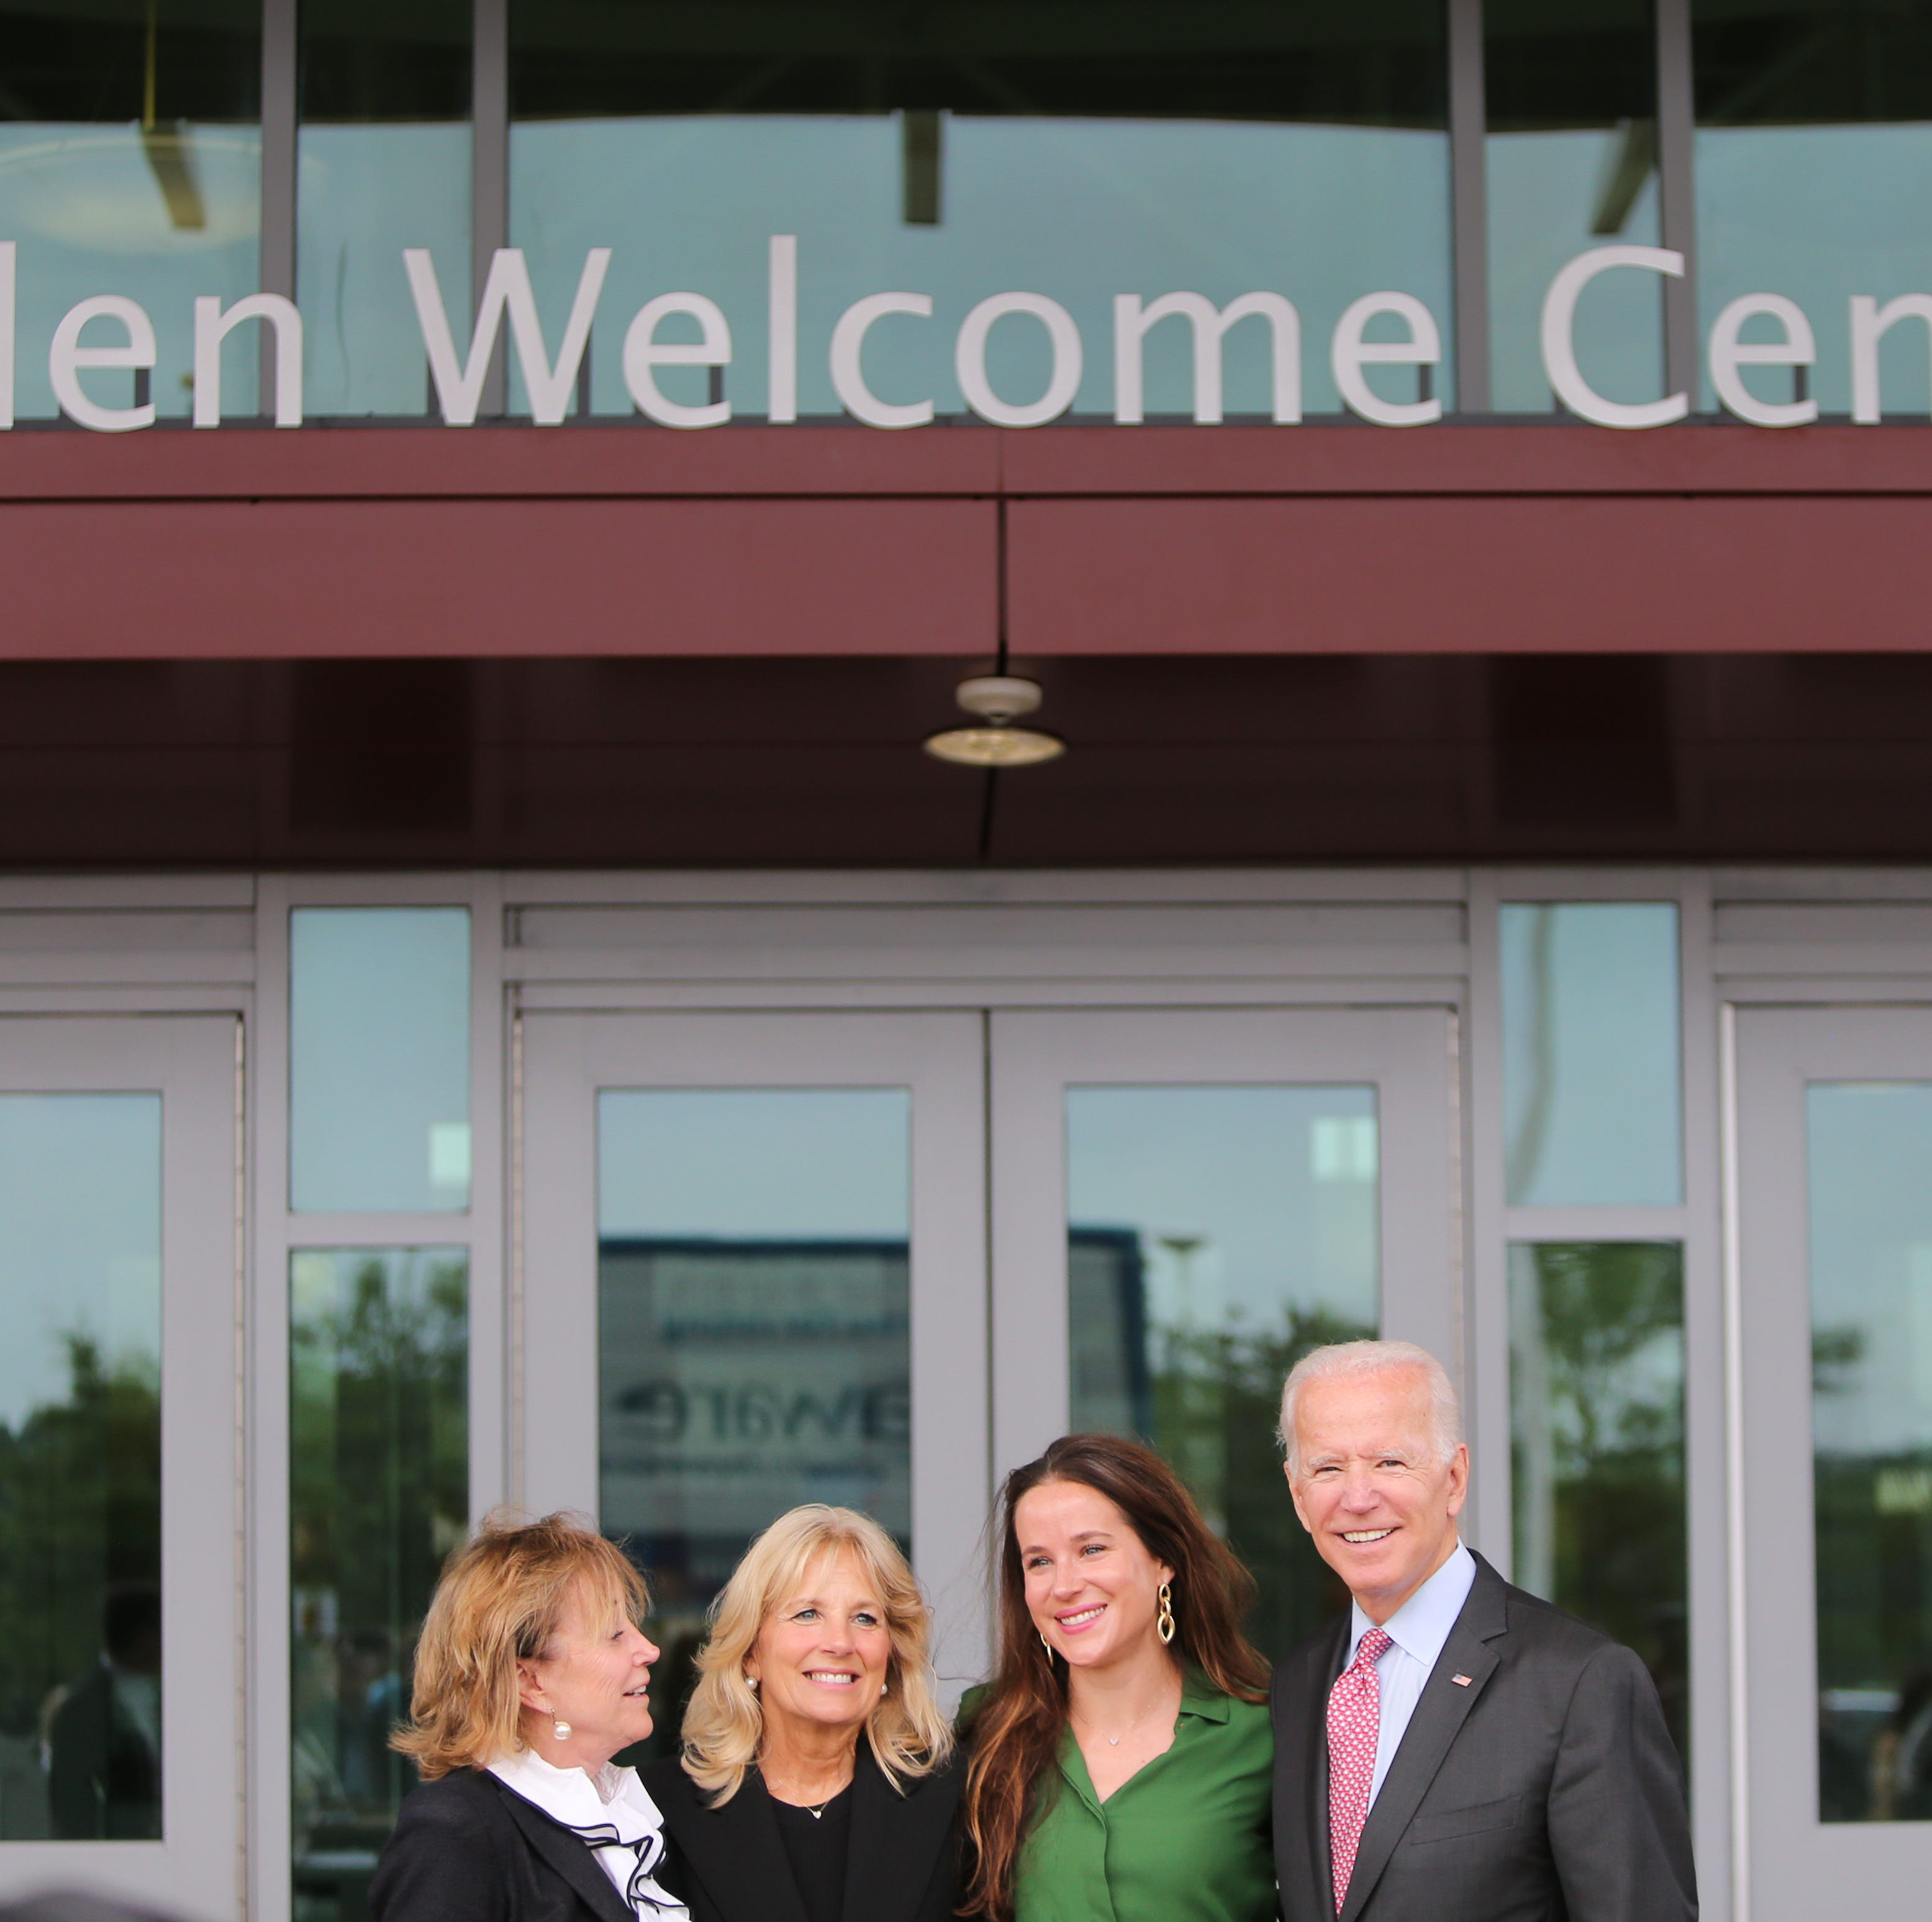 The Biden family stand outside of the newly renamed Biden Welcome Center. The Delaware Welcome Center is renamed the Biden Welcome Center during a ceremony Monday.